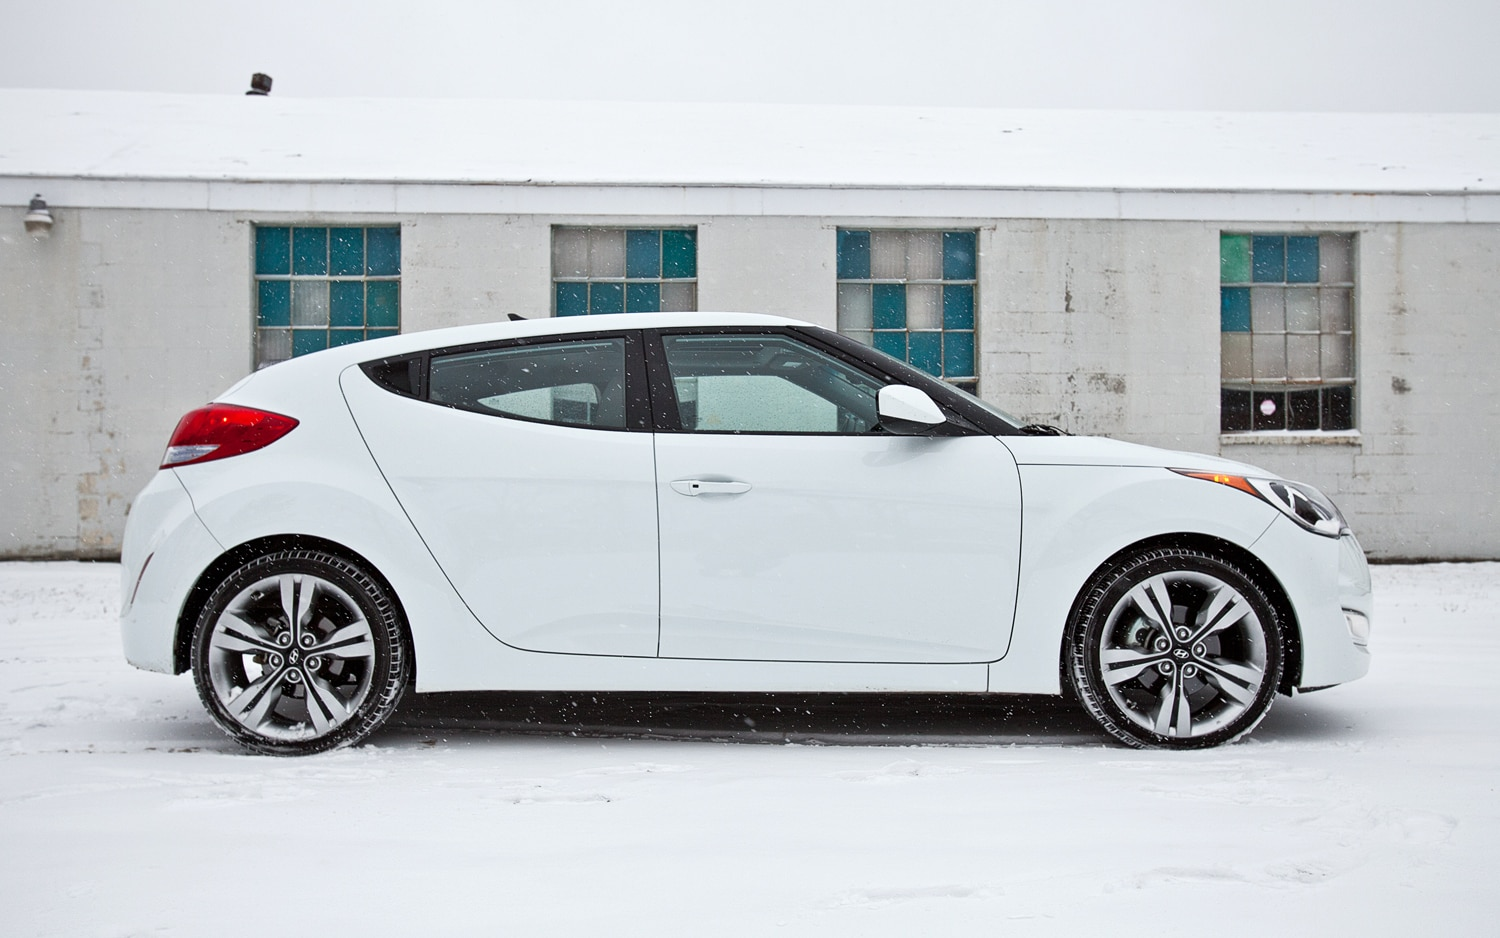 2012 Hyundai Veloster DCT Right Side View1